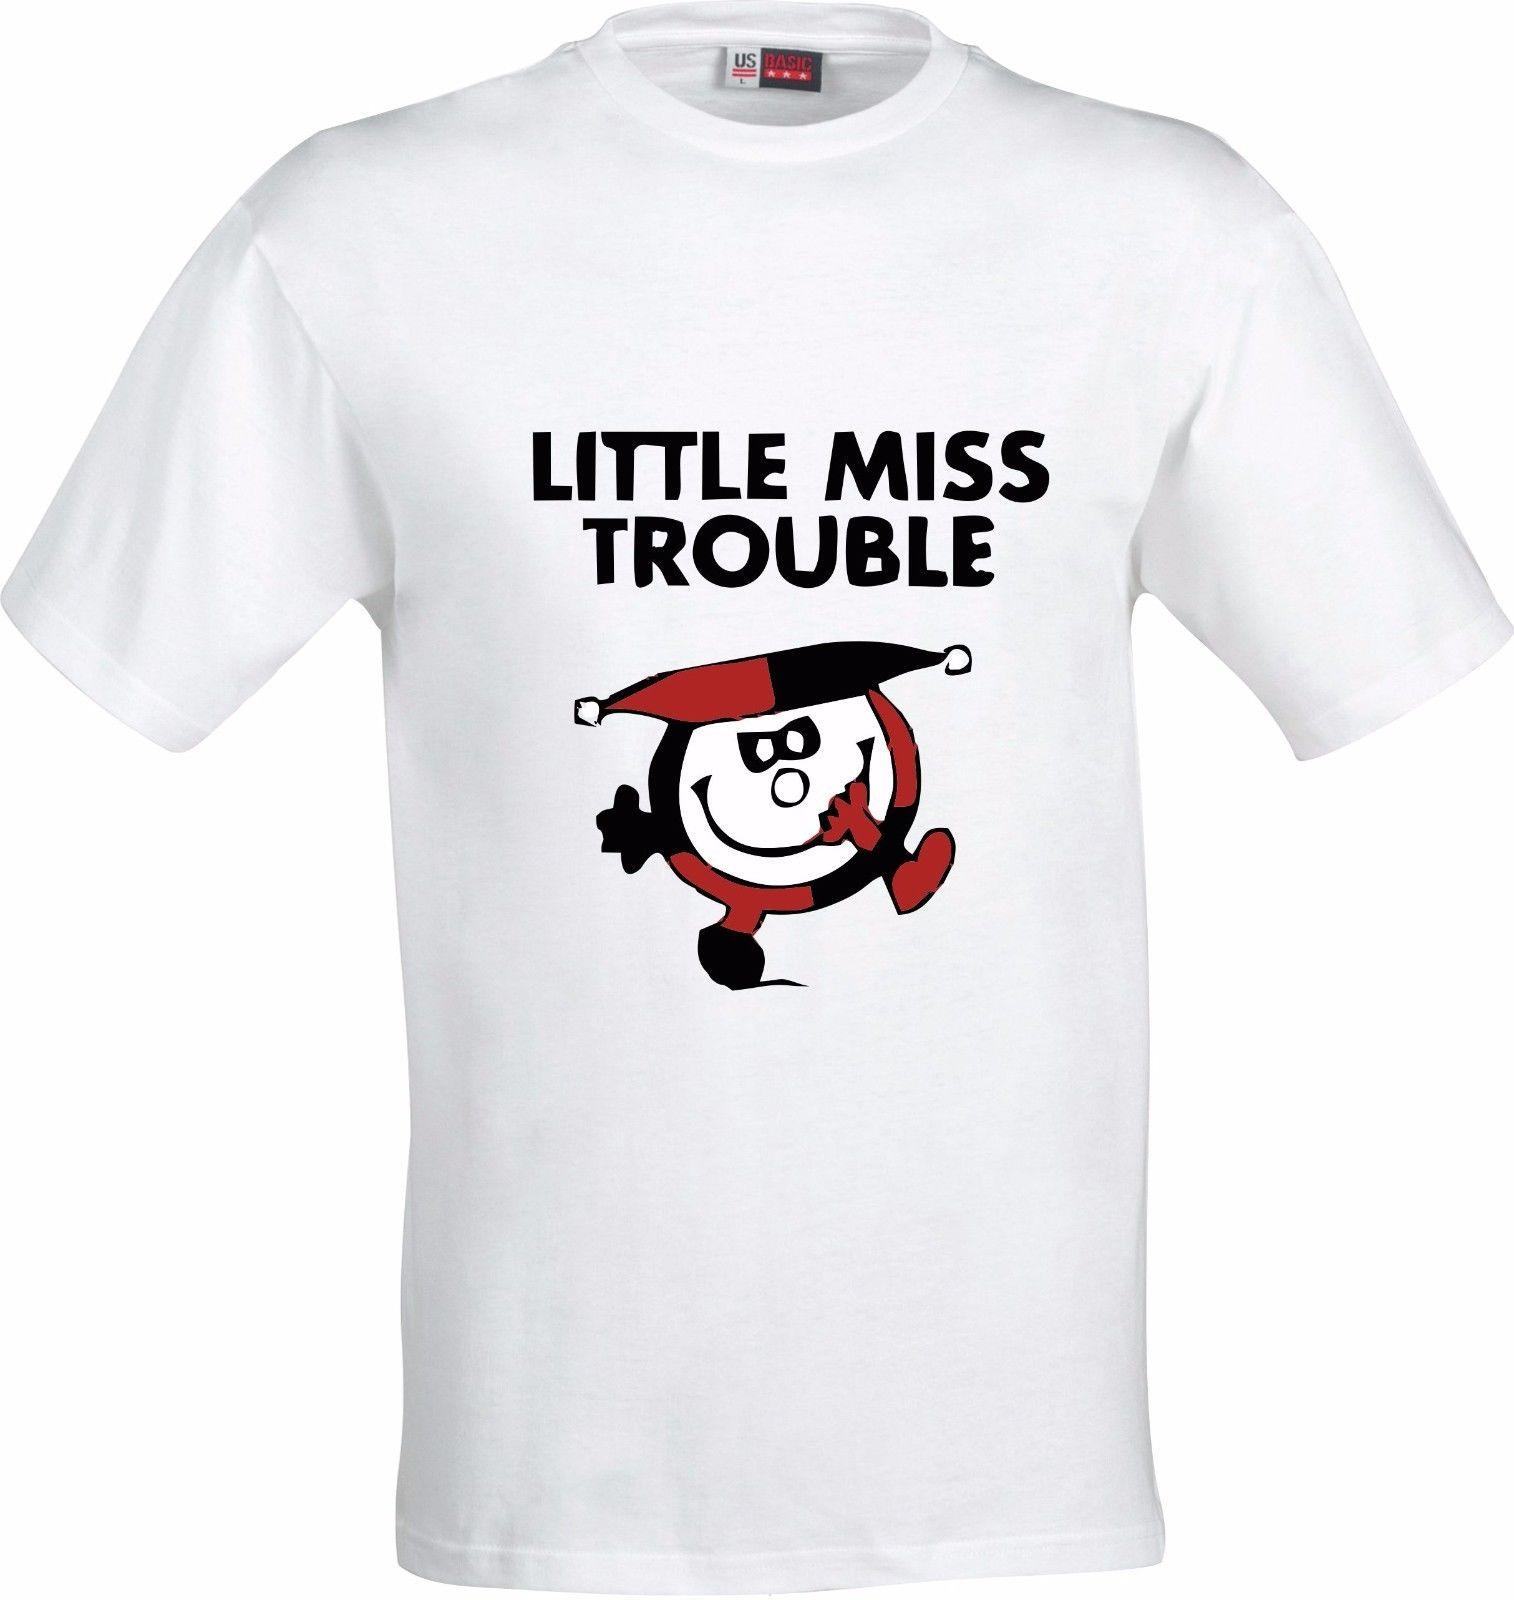 e4579c28711 LITTLE MISS TROUBLE FUNNY FULL COLOR SUBLIMATION T SHIRT Custom Printed  Tshirt